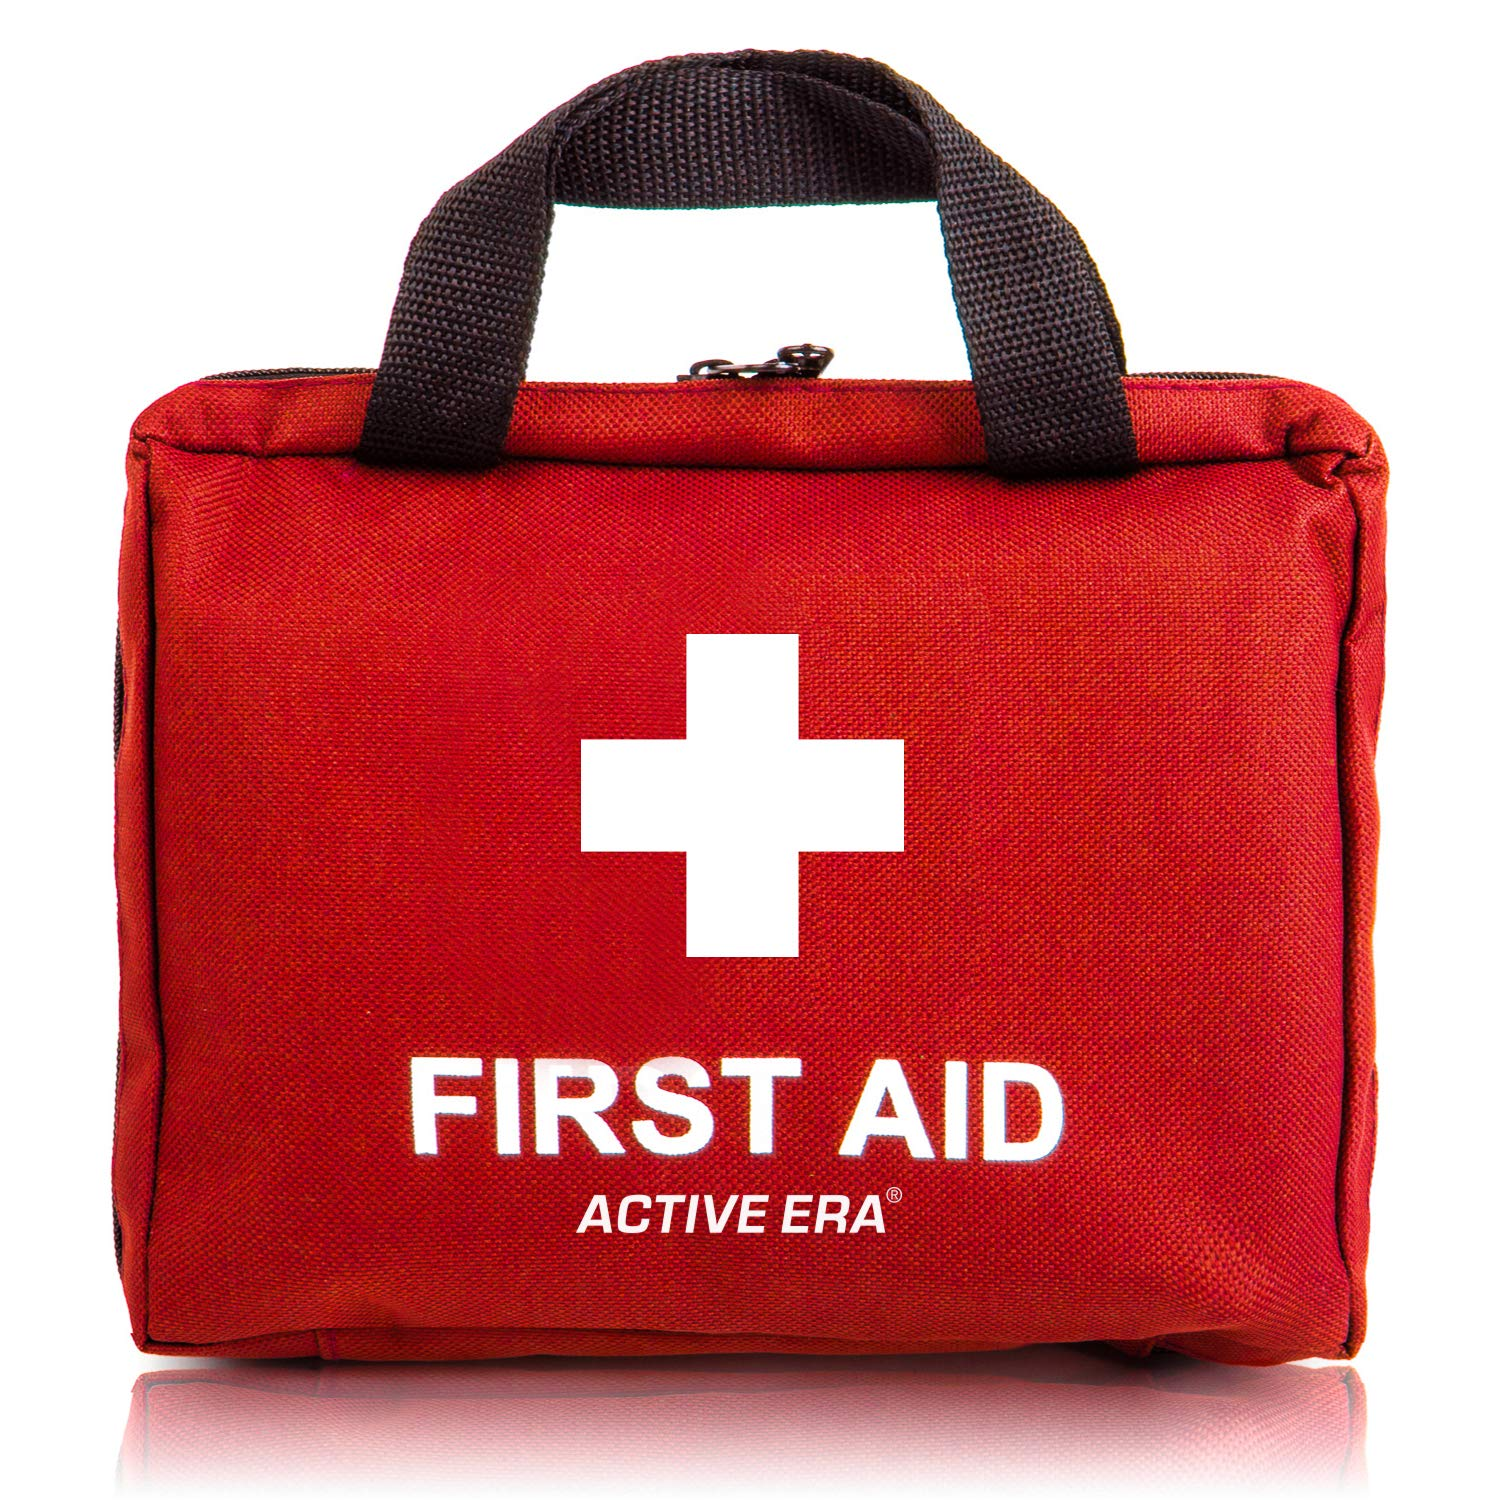 90 Pieces First Aid Kit – All-Purpose with Premium Medical Supplies and Soft Case for Home, Office, Business, Car, Camping and Travel